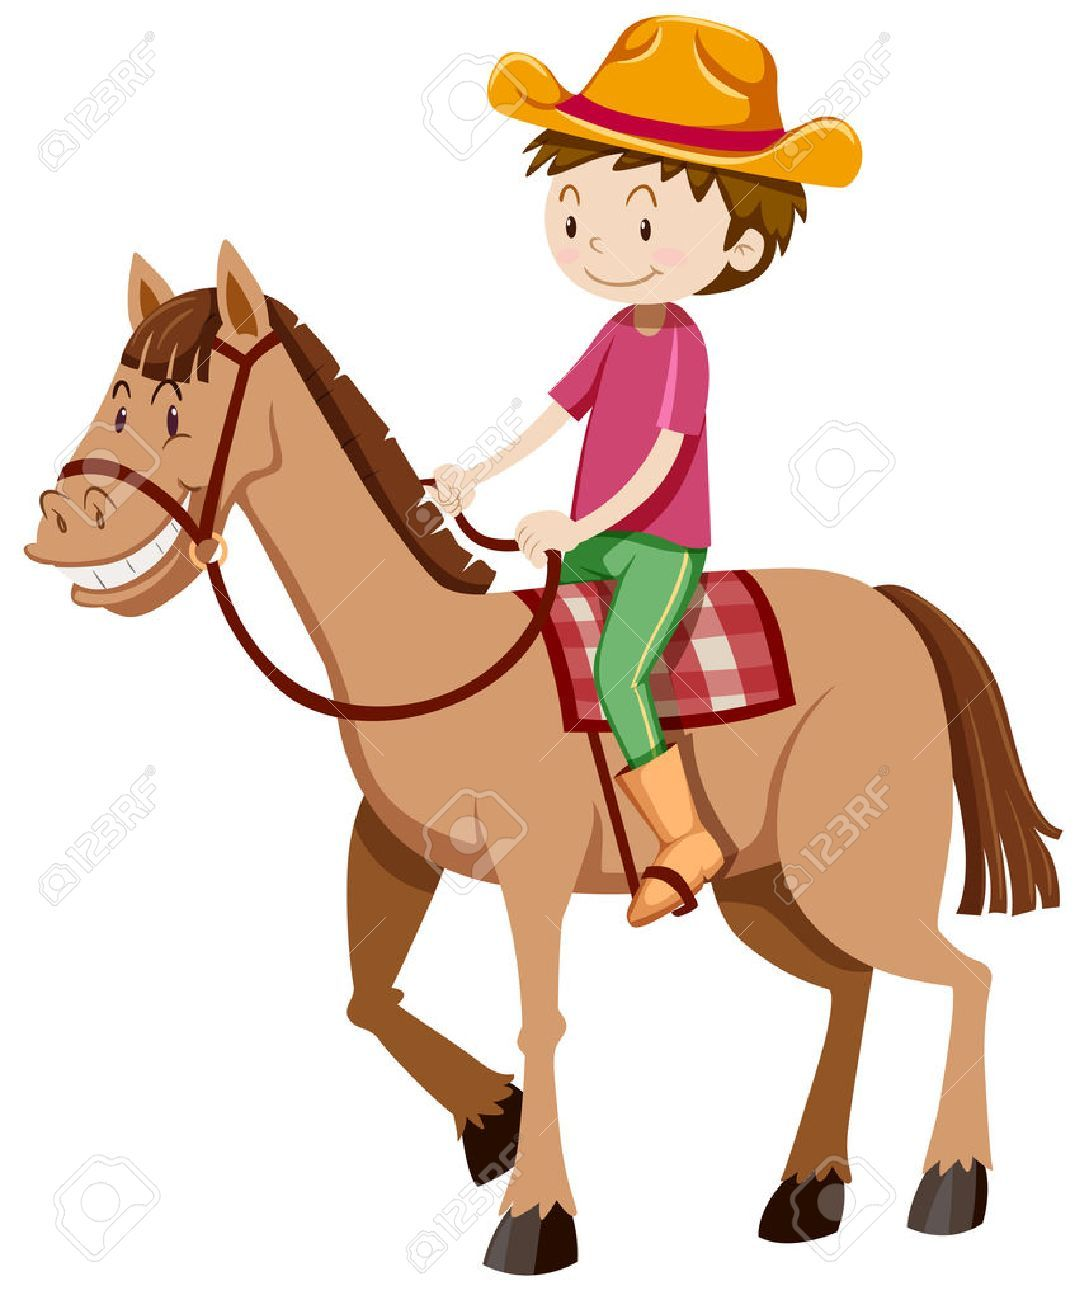 Horse riding pictures clipart jpg black and white library Horse riding clipart 4 » Clipart Portal jpg black and white library